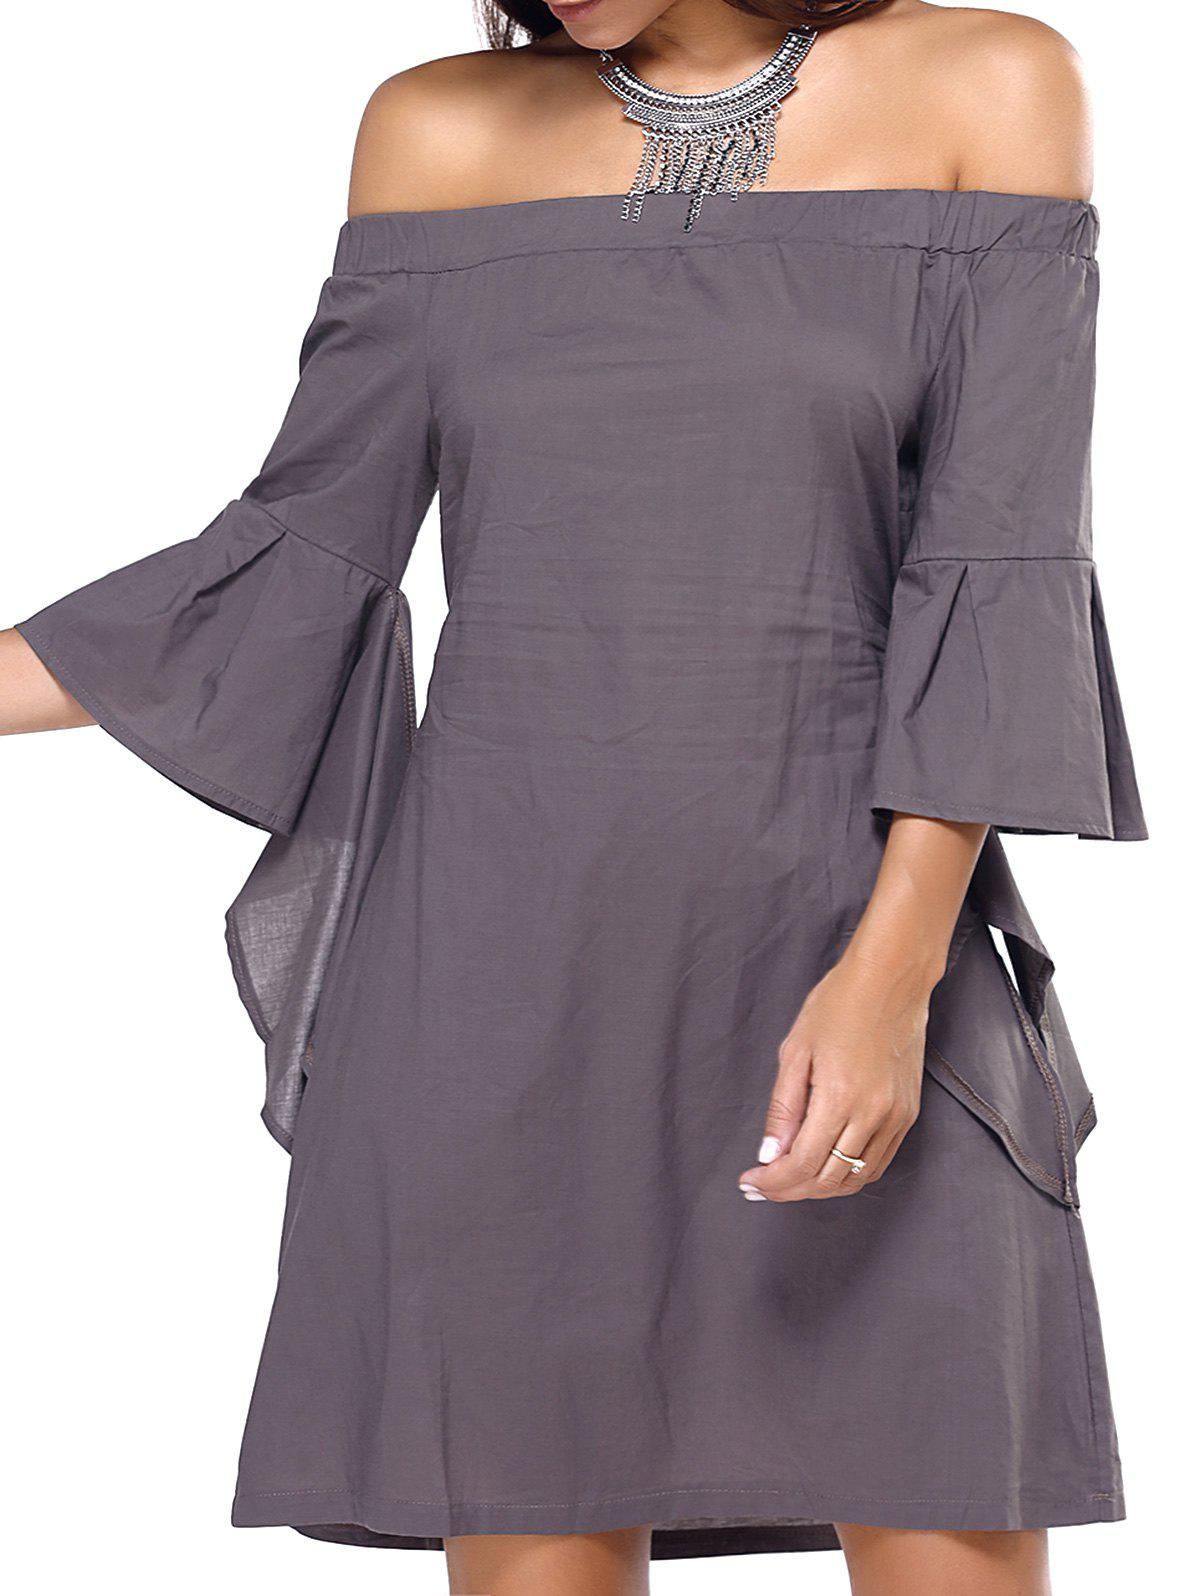 Off The Shoulder Flare Sleeve Dress - TEA COLORED XL